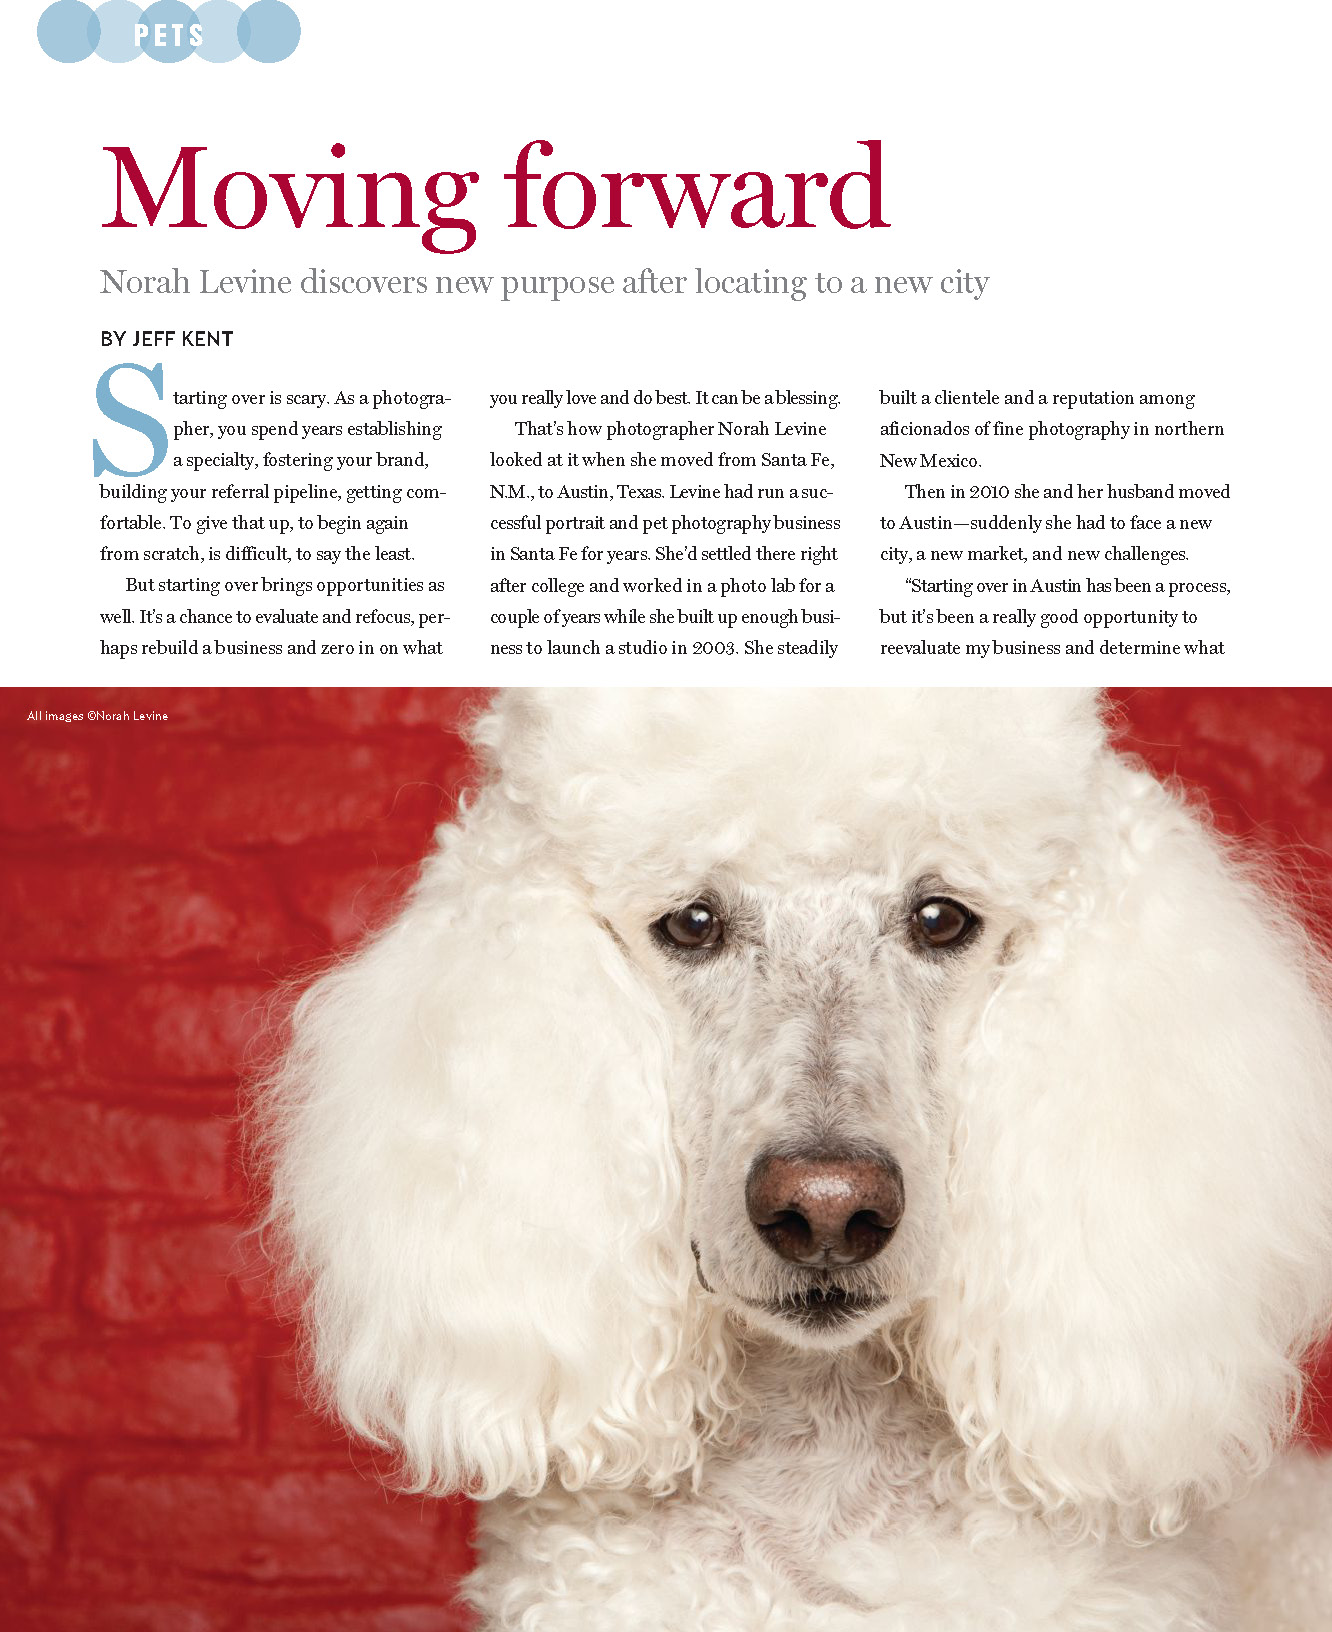 Pet Photography Article